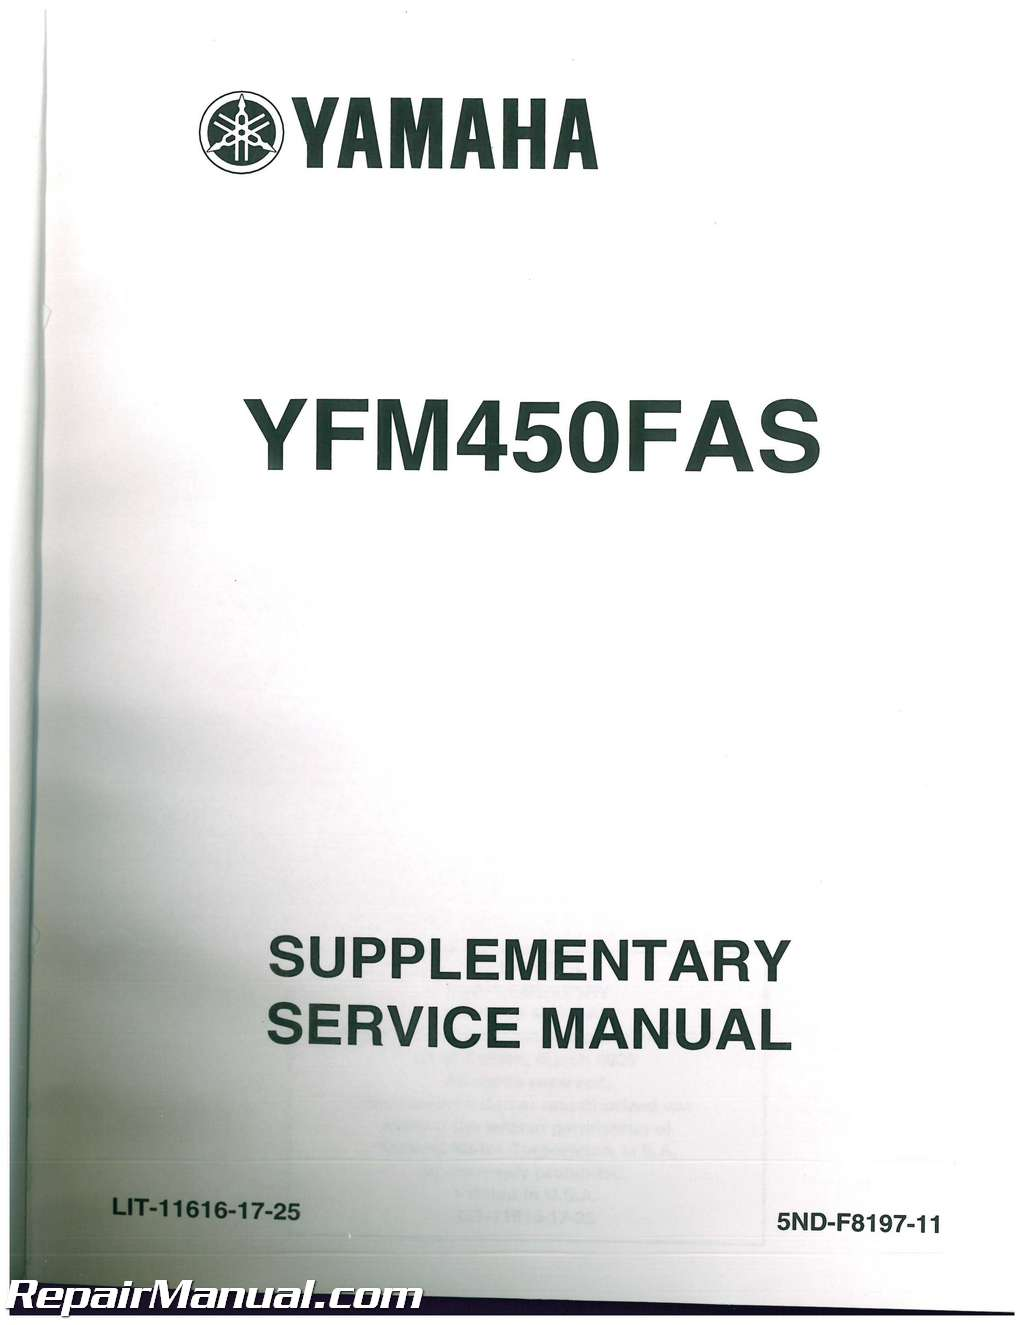 Yamaha Grizzly Wiring Diagram Page 5 And Schematics 350 Grizzley Atv 2003 2006 Kodiak 450 4wd 2007 2014 Service Manual Rh Repairmanual Com